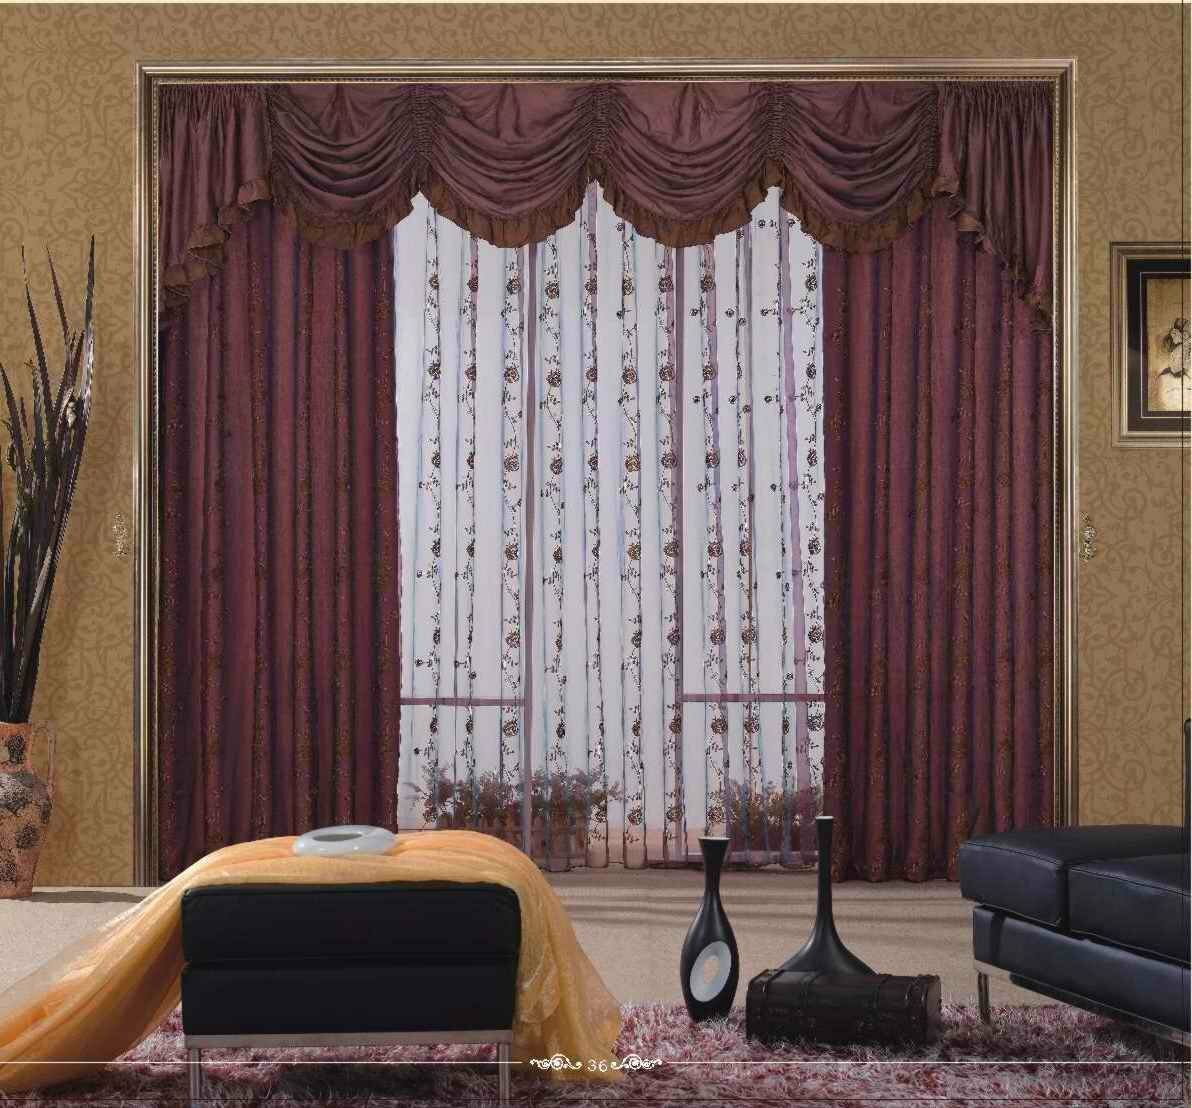 20 Best Curtain Ideas For Living Room 2017: Curtain: Cute Living Room Valances For Your Home